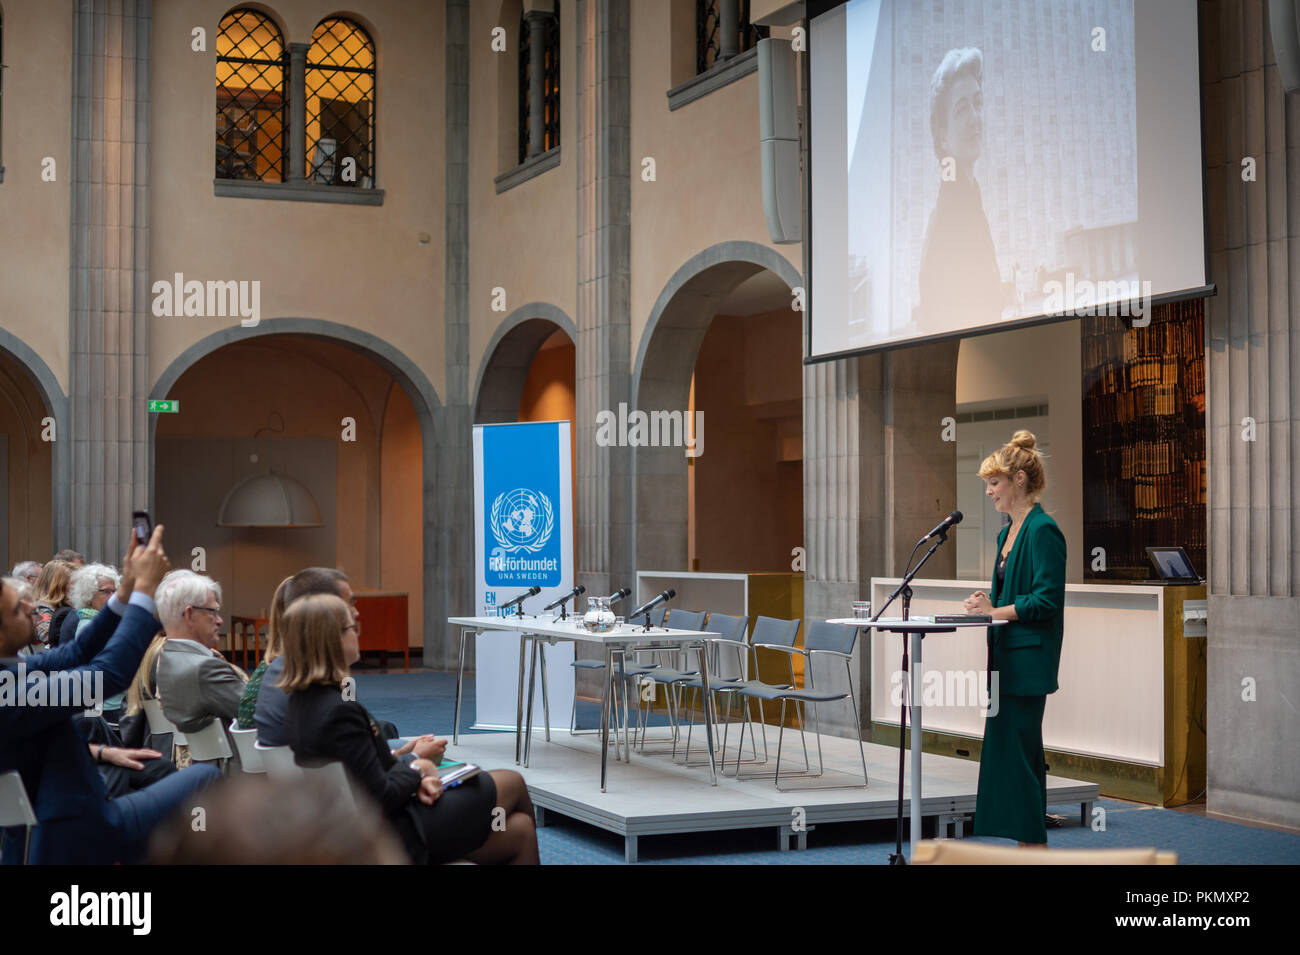 """Stockholm, Sweden, September 14, 2018. Seminar about Agda Rössel (1910-2001) Sweden's and the world's first female UN ambassador. Presentation of the book """"Her Excellency Agda Rössel: from Lineman cottage to the UN Scraper """"by author Elin Jäderström. The author Elin Jäderström.The seminar is held at the Ministry of Foreign Affairs.  Credit: Barbro Bergfeldt/Alamy Live News Stock Photo"""